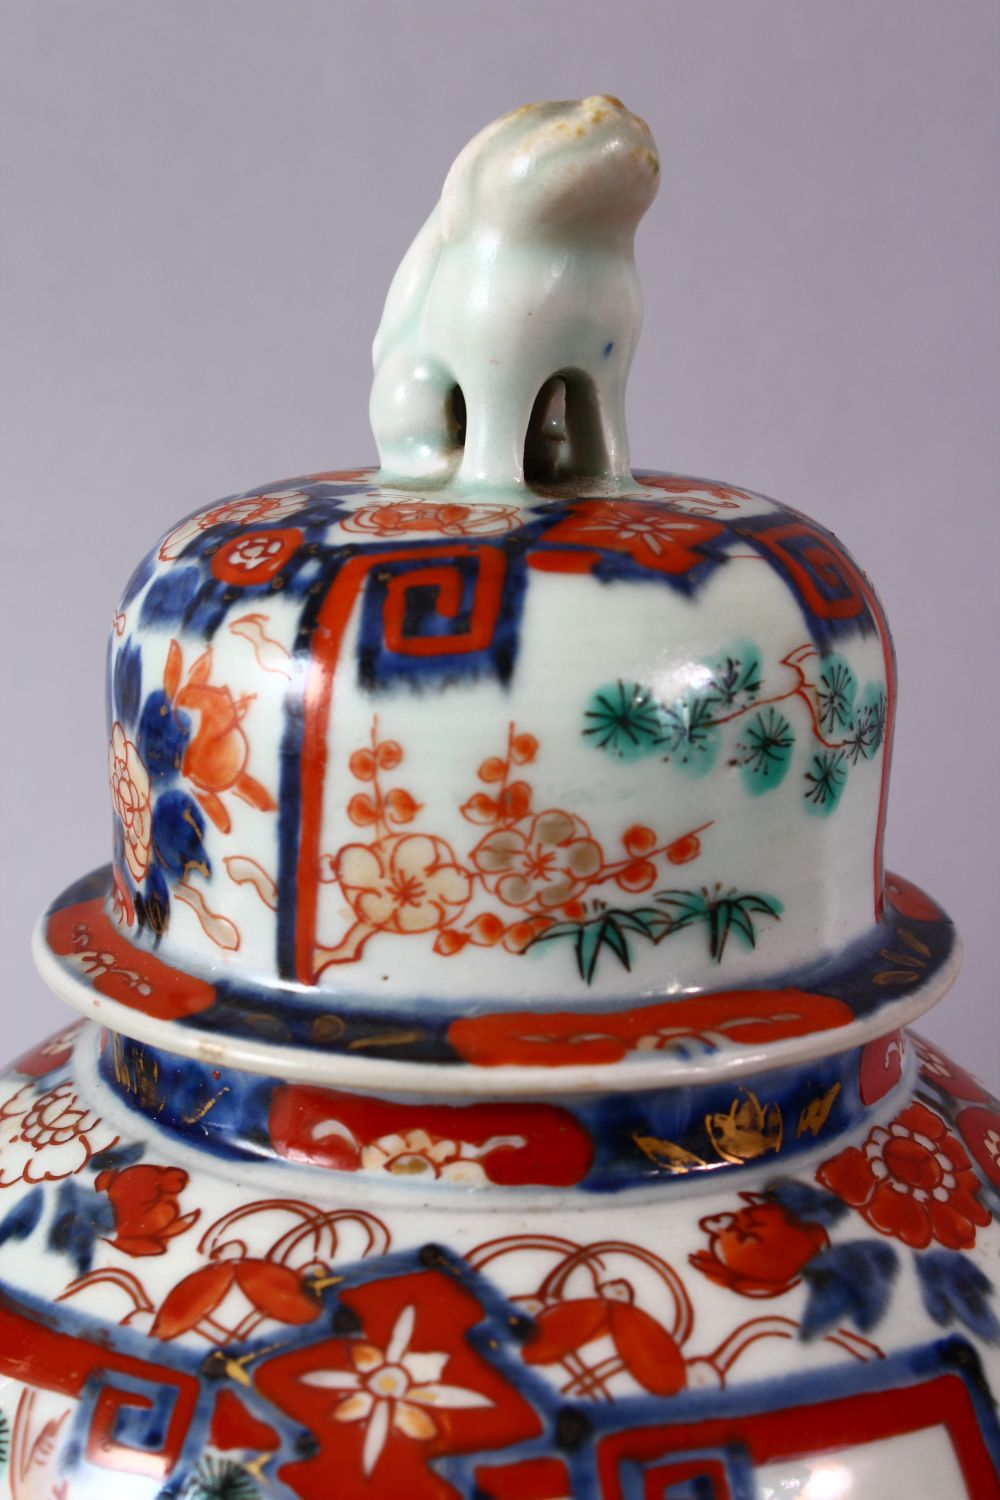 A PAIR OF MEIJI PERIOD IMARI VASES AND COVERS, with kylin finials, overall 30cm high. - Image 4 of 10